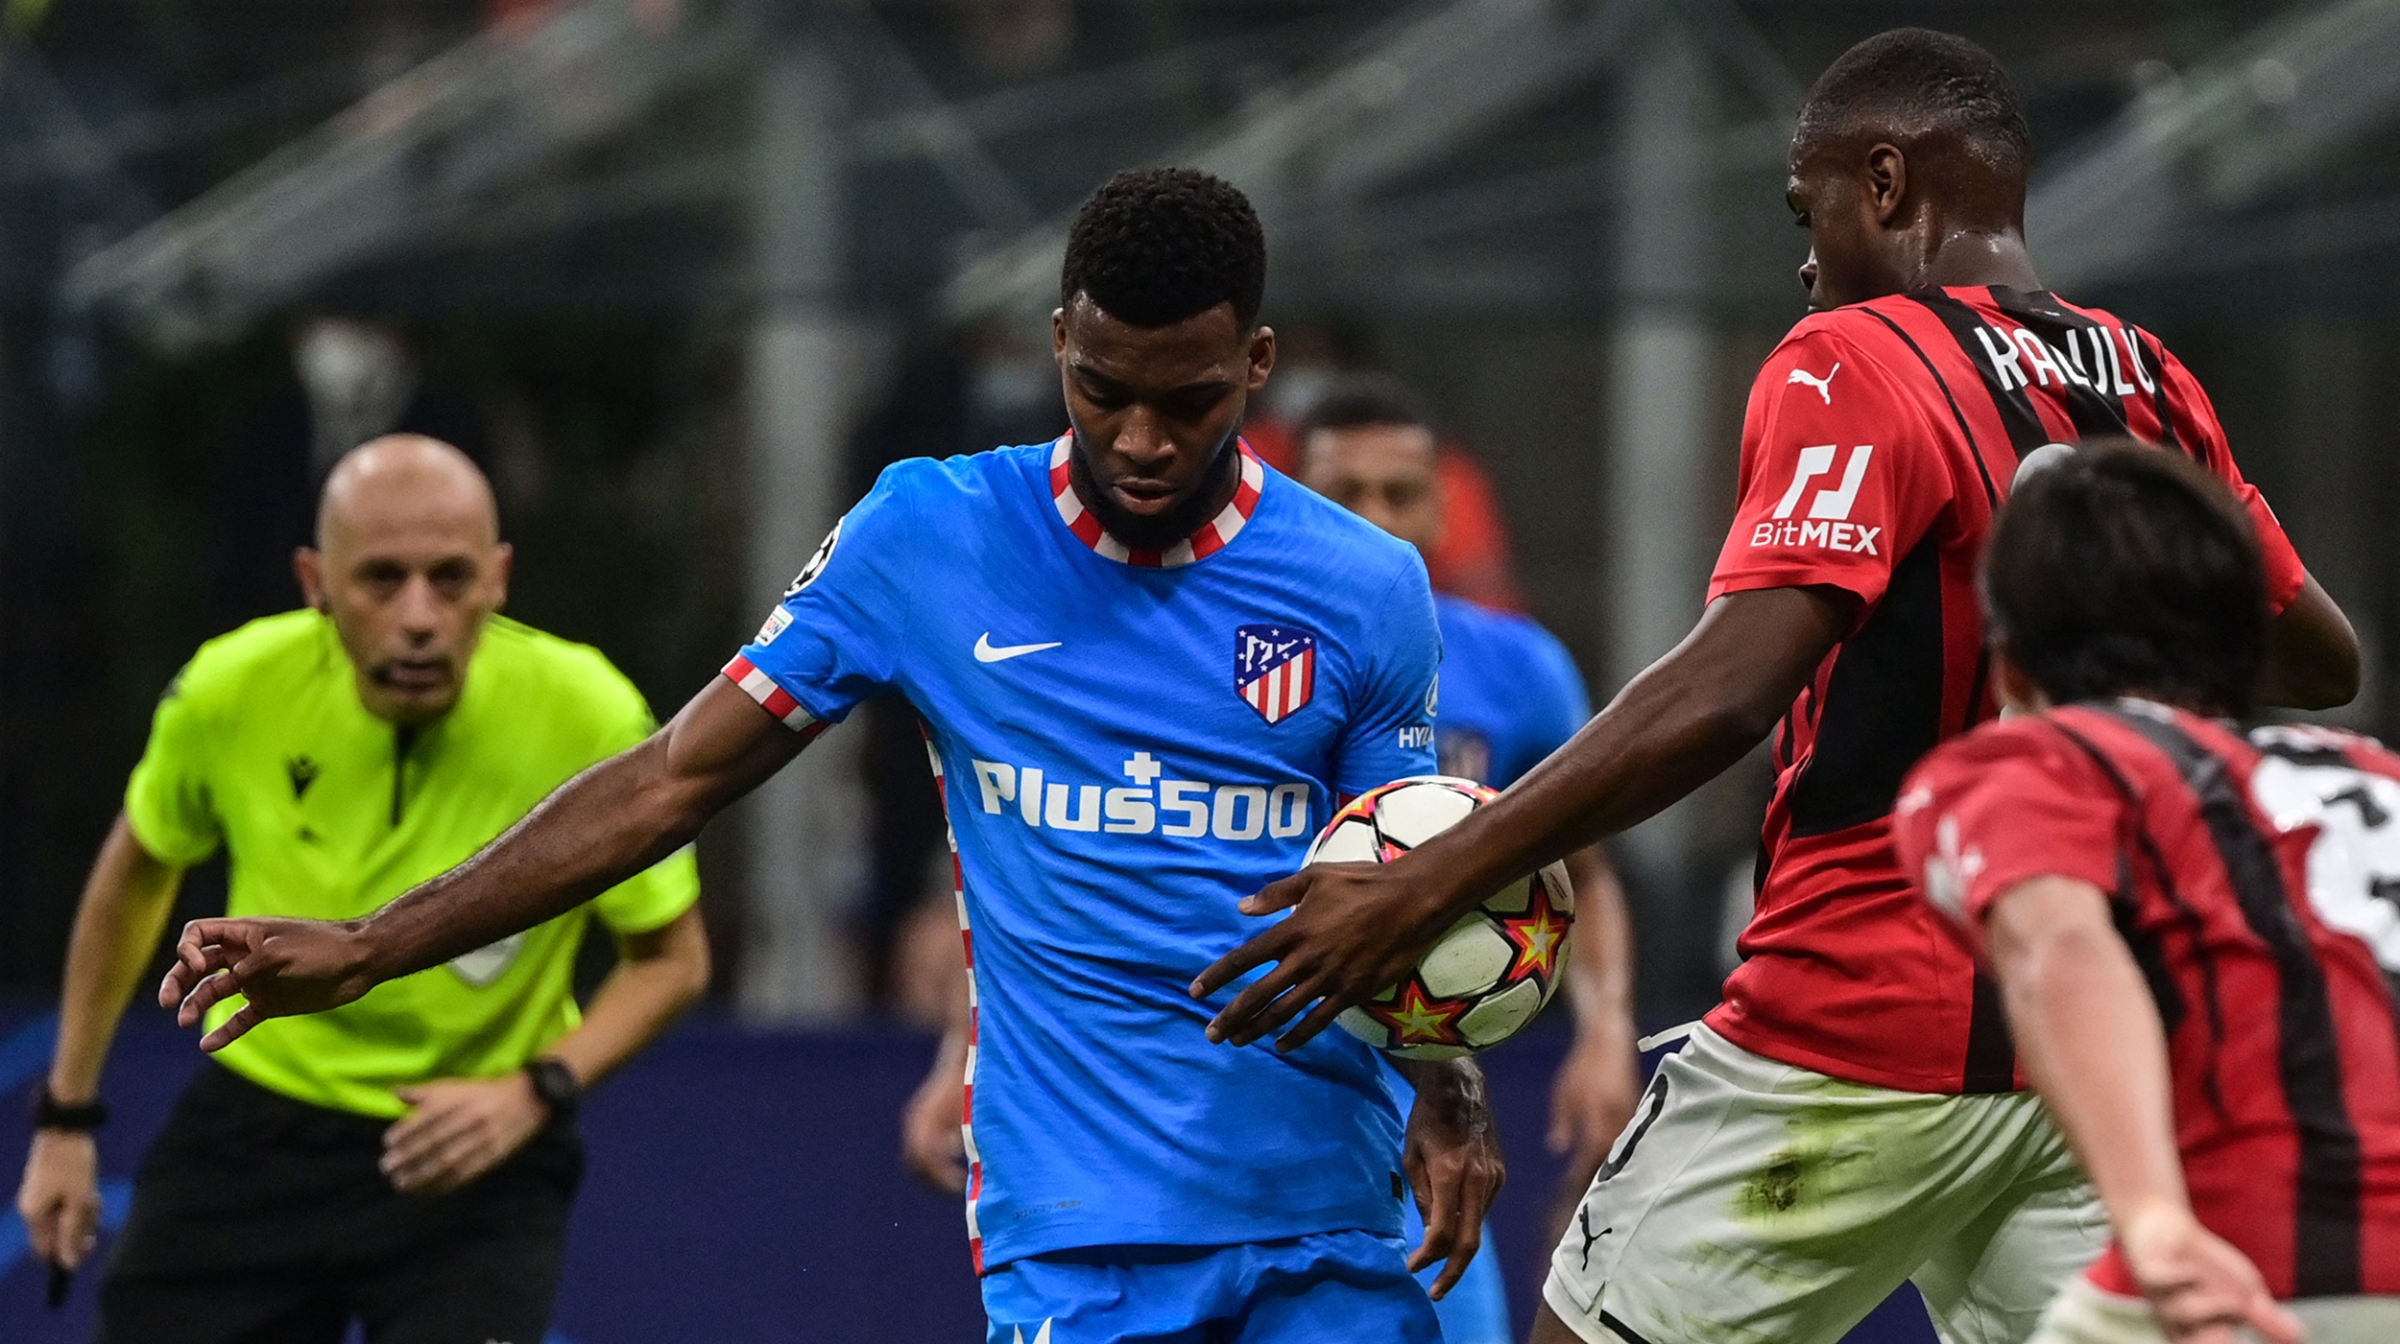 AC Milan's French defender Pierre Kalulu (2ndR) touches the ball with the hand in the penalty area during the UEFA Champions League Group B football match between AC Milan and Atletico Madrid on September 28, 2021 at the San Siro stadium in Milan.